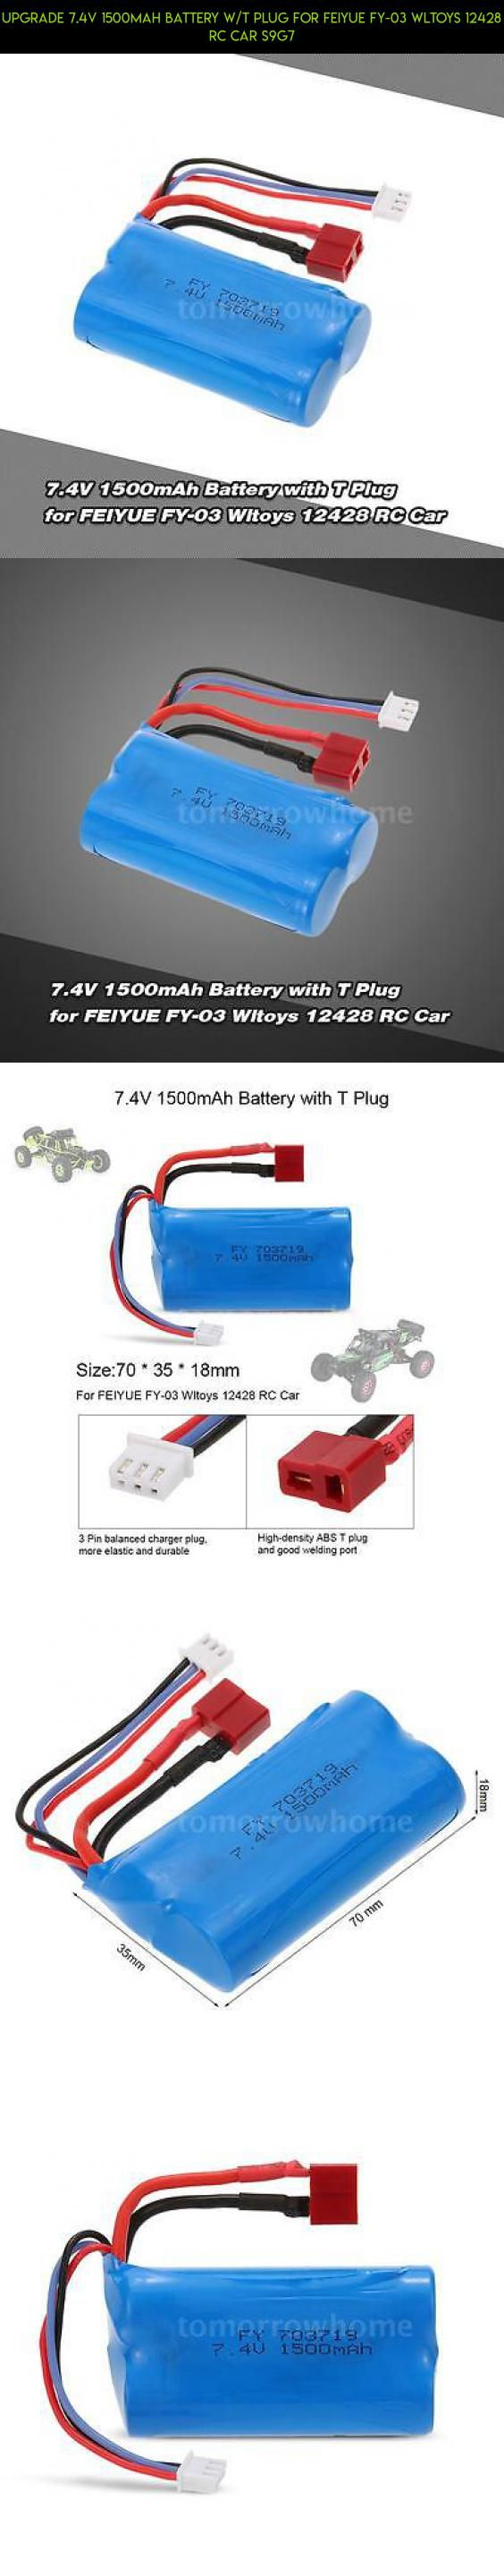 Upgrade 7.4V 1500mAh Battery w/T Plug for FEIYUE FY-03 Wltoys 12428 RC Car S9G7 #technology #plans #battery #gadgets #parts #tech #t #kit #racing #fpv #wltoys #shopping #products #camera #drone #plug